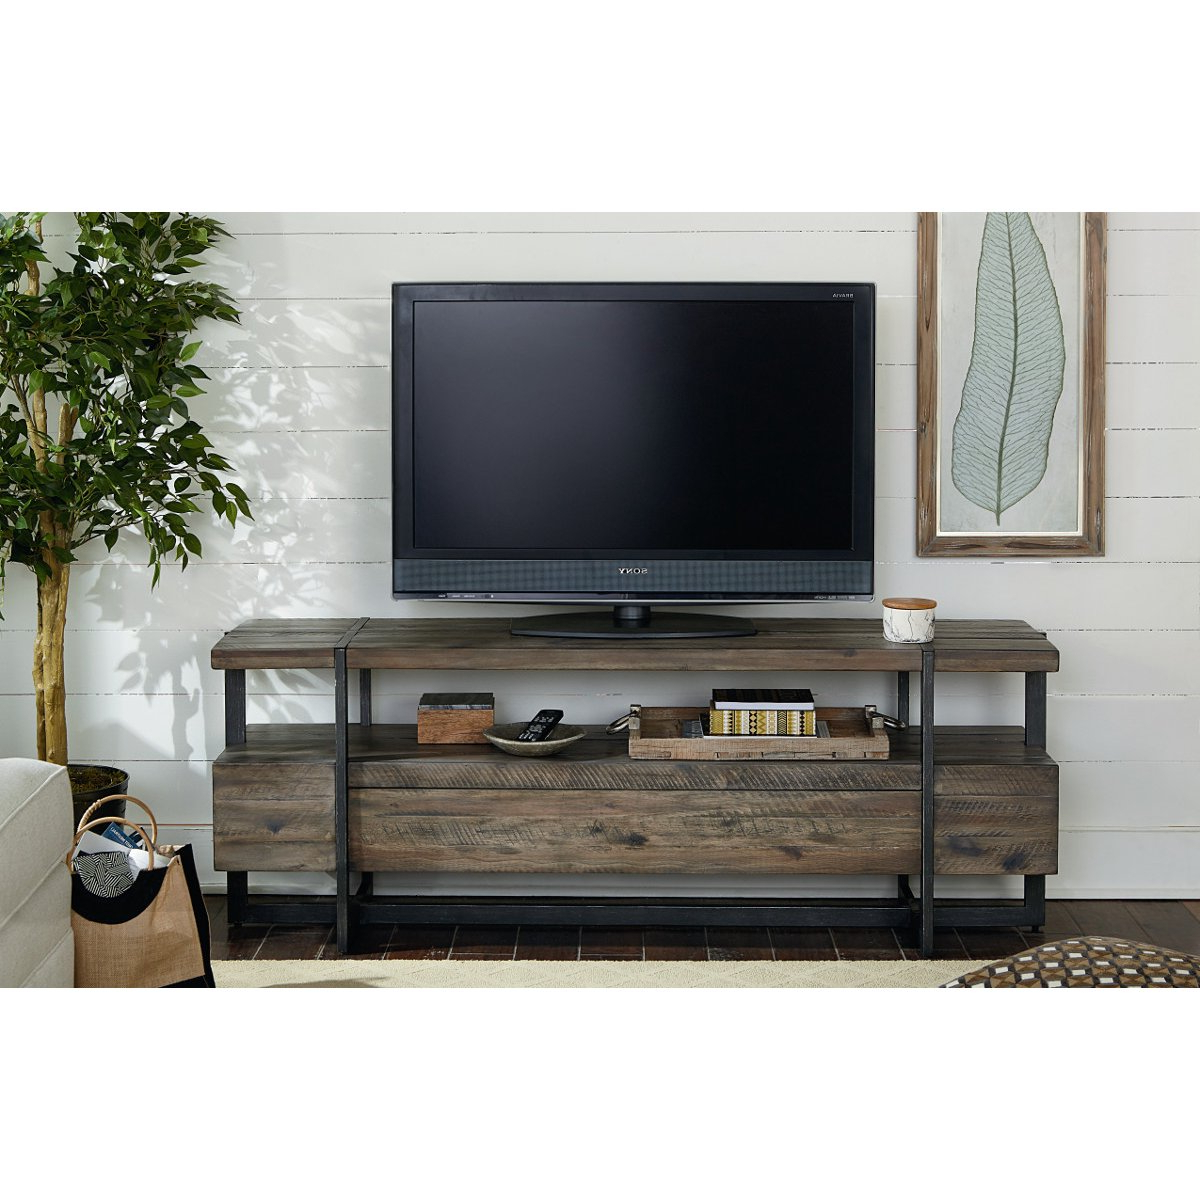 Modern Tv Stands For 60 Inch Tvs For Current 66 Inch Rustic Brown Tv Stand – Modern Timber (View 8 of 20)